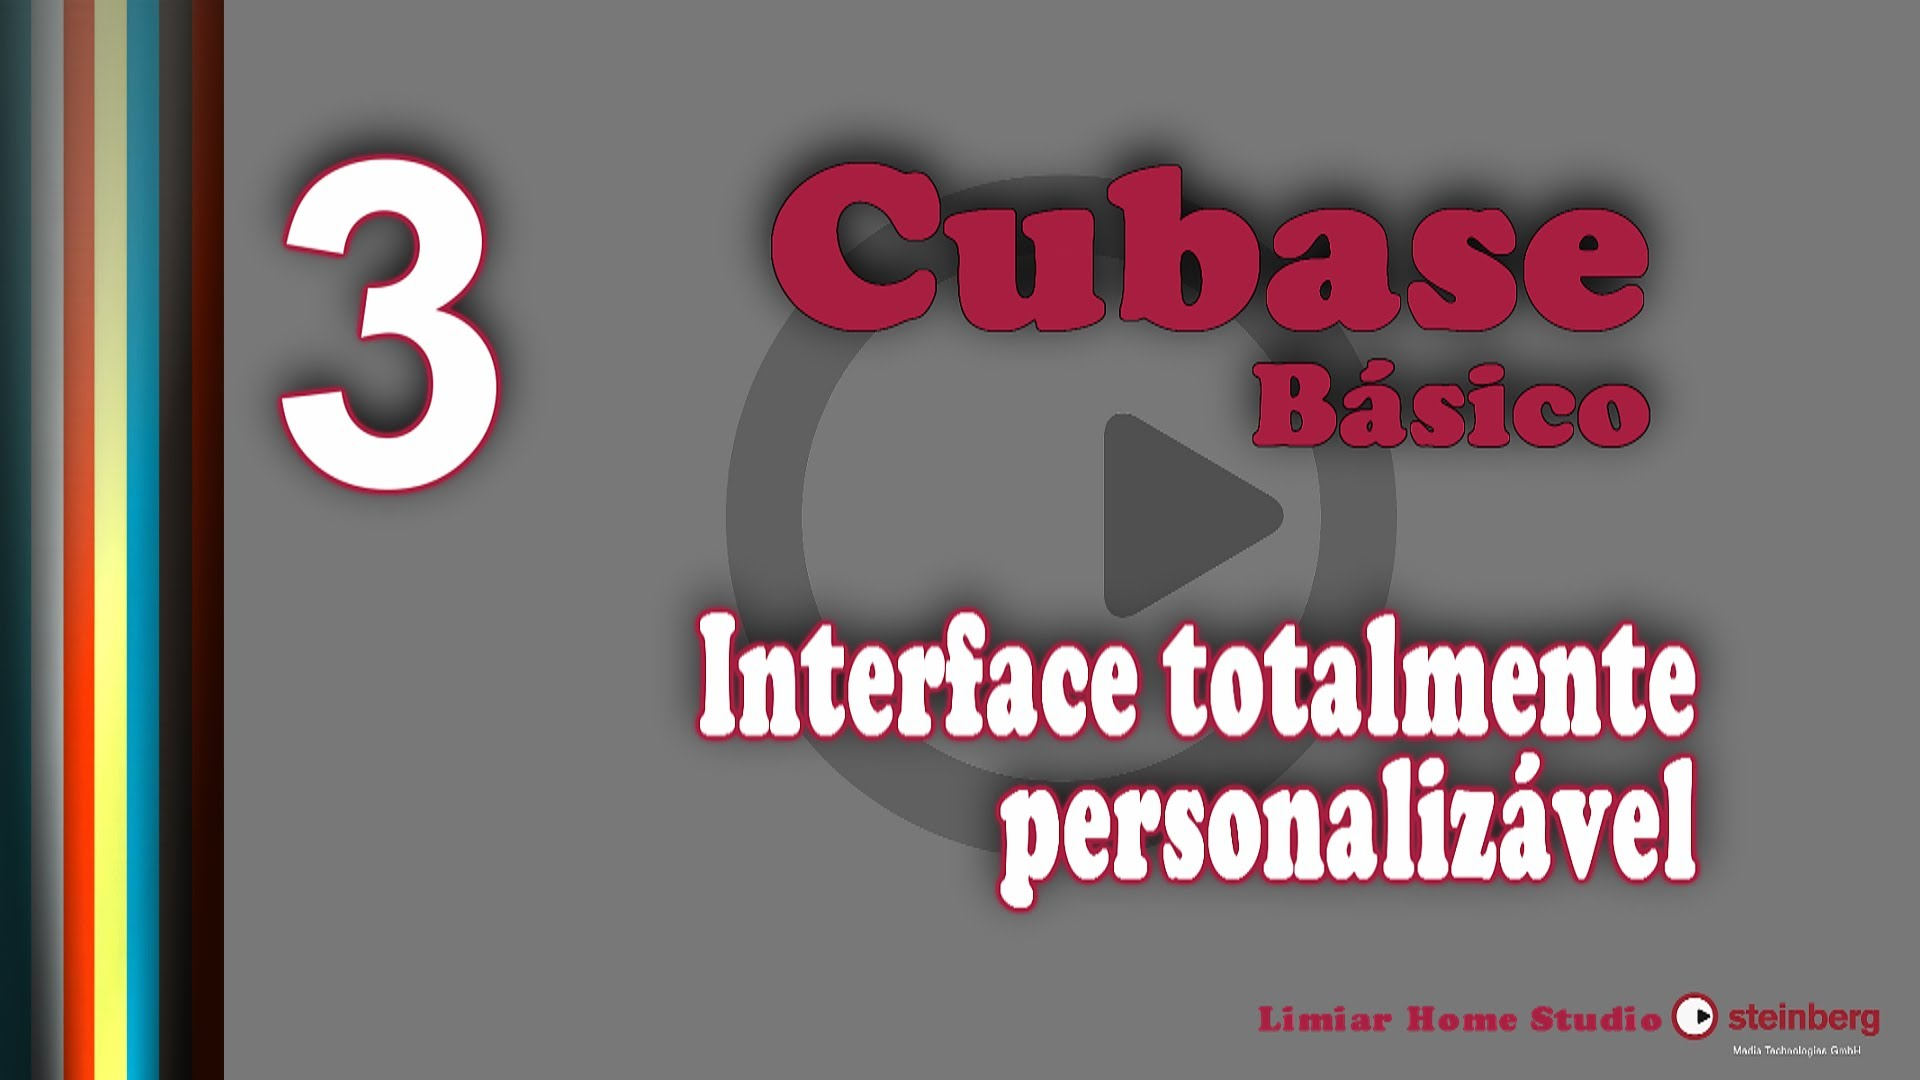 315 cubase basico interface tota